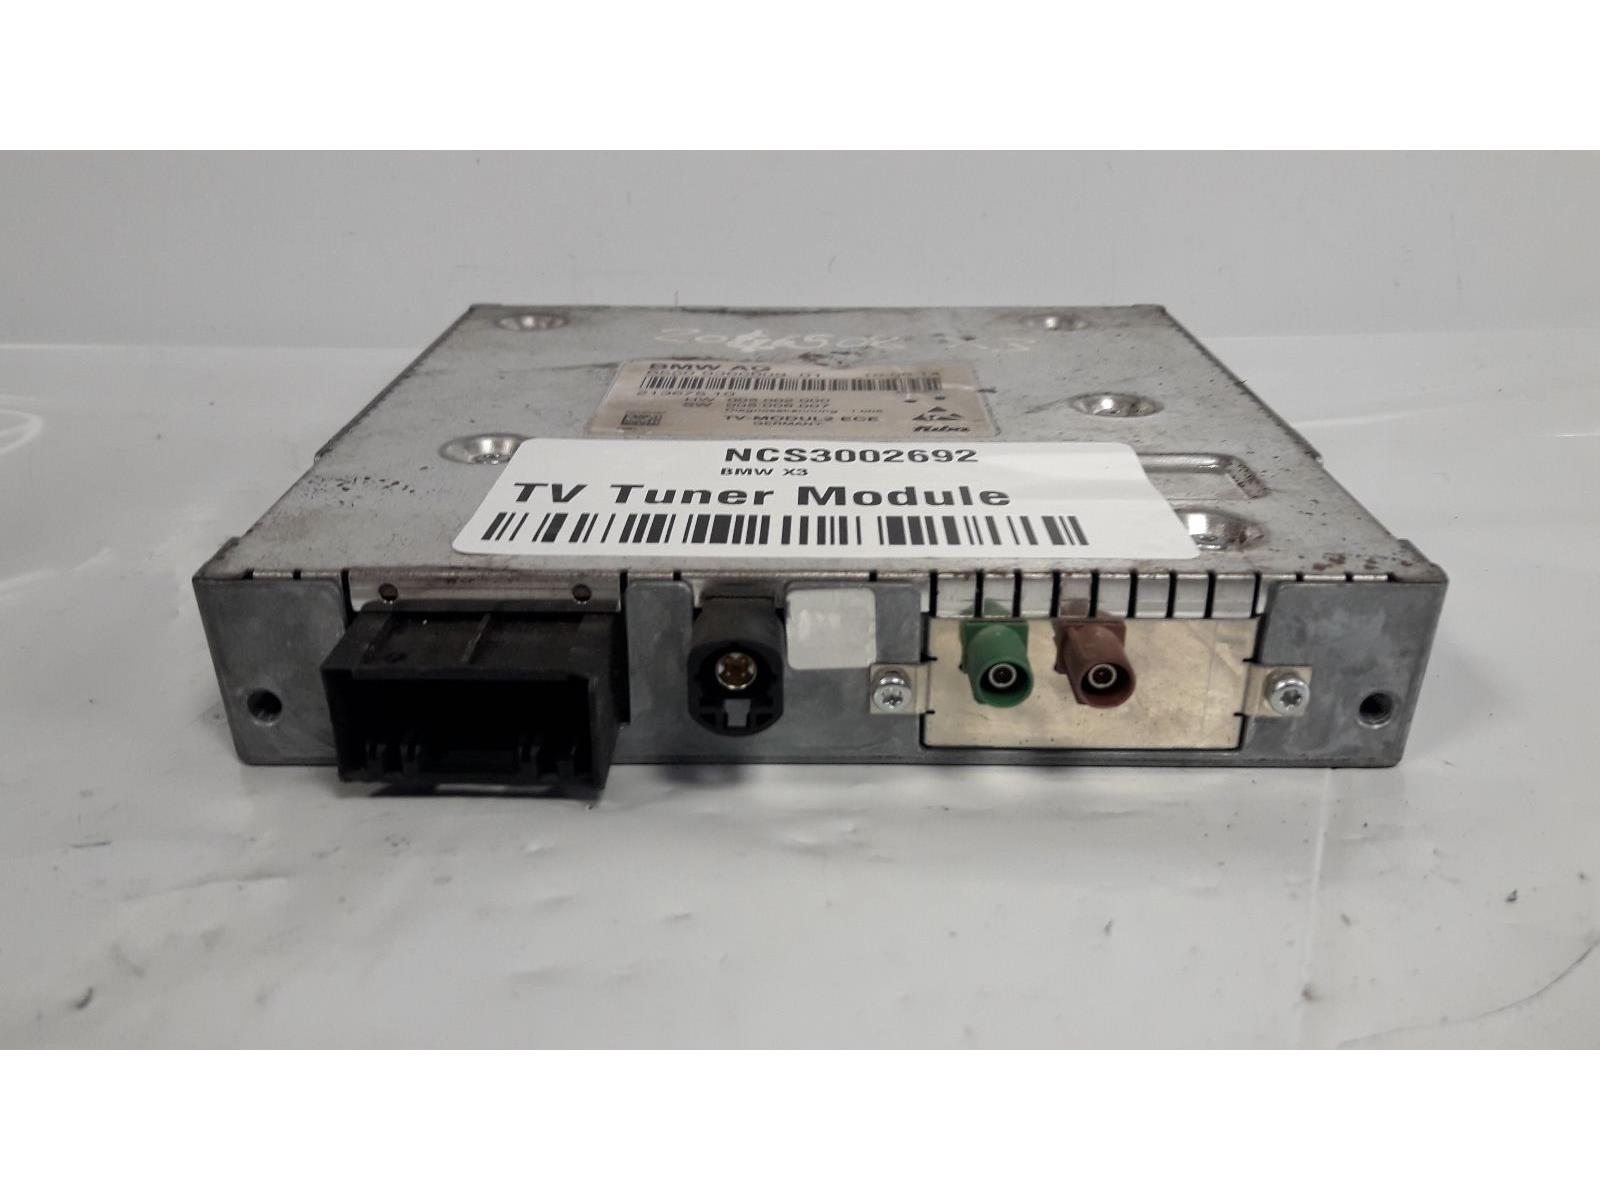 BMW tv module  untested may need coding in 6550 9366609 01